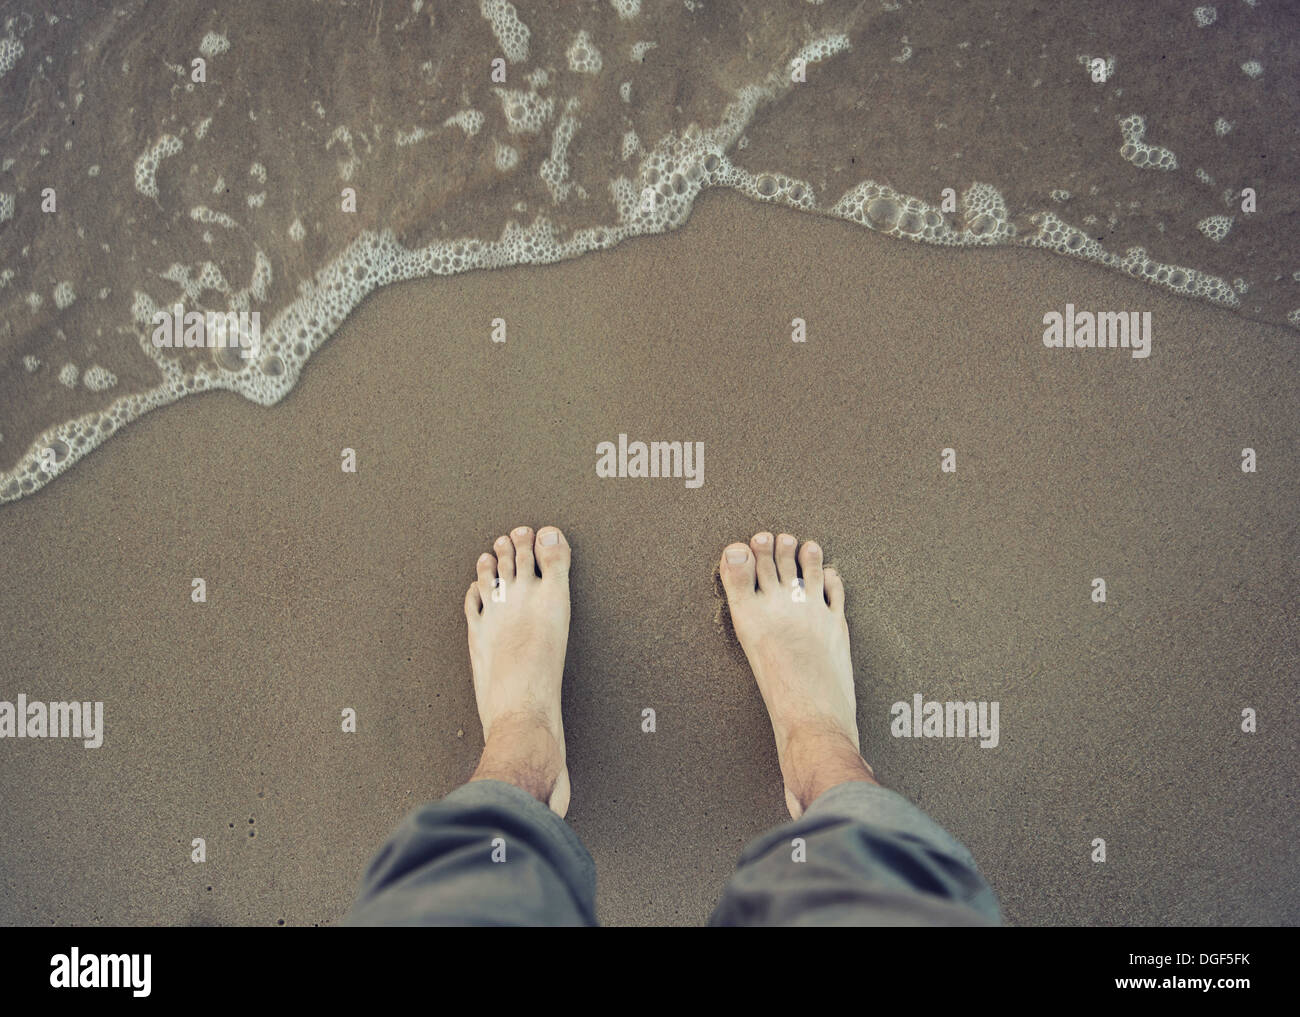 Photo of male bare foot near the sea water - Stock Image